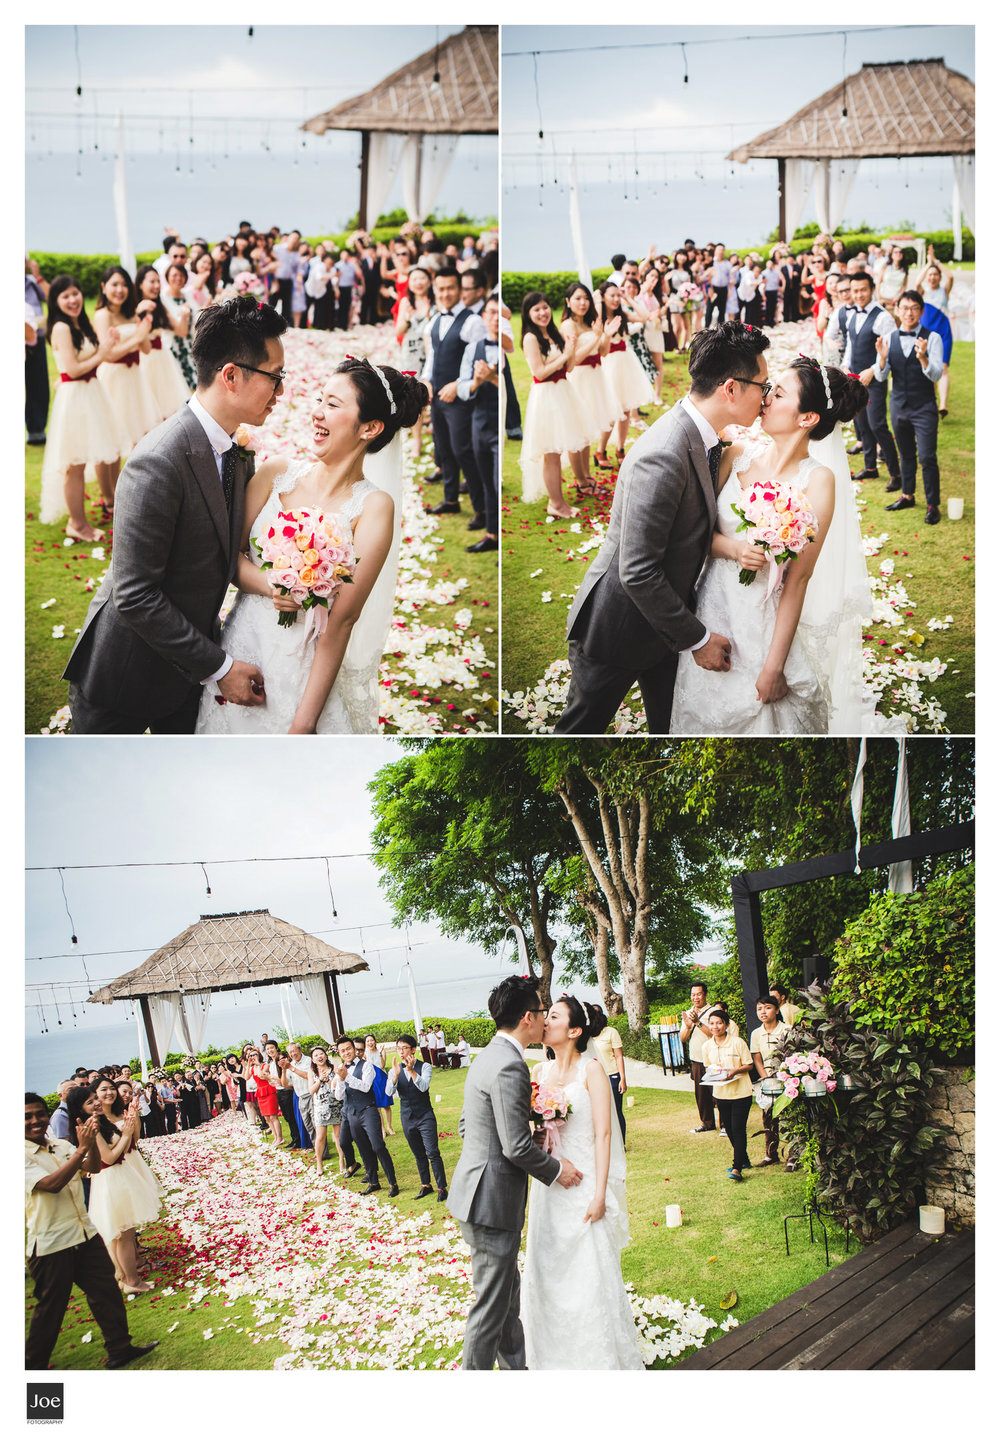 joe-fotography-bali-wedding-ayana-resort-janie-sean-54.jpg